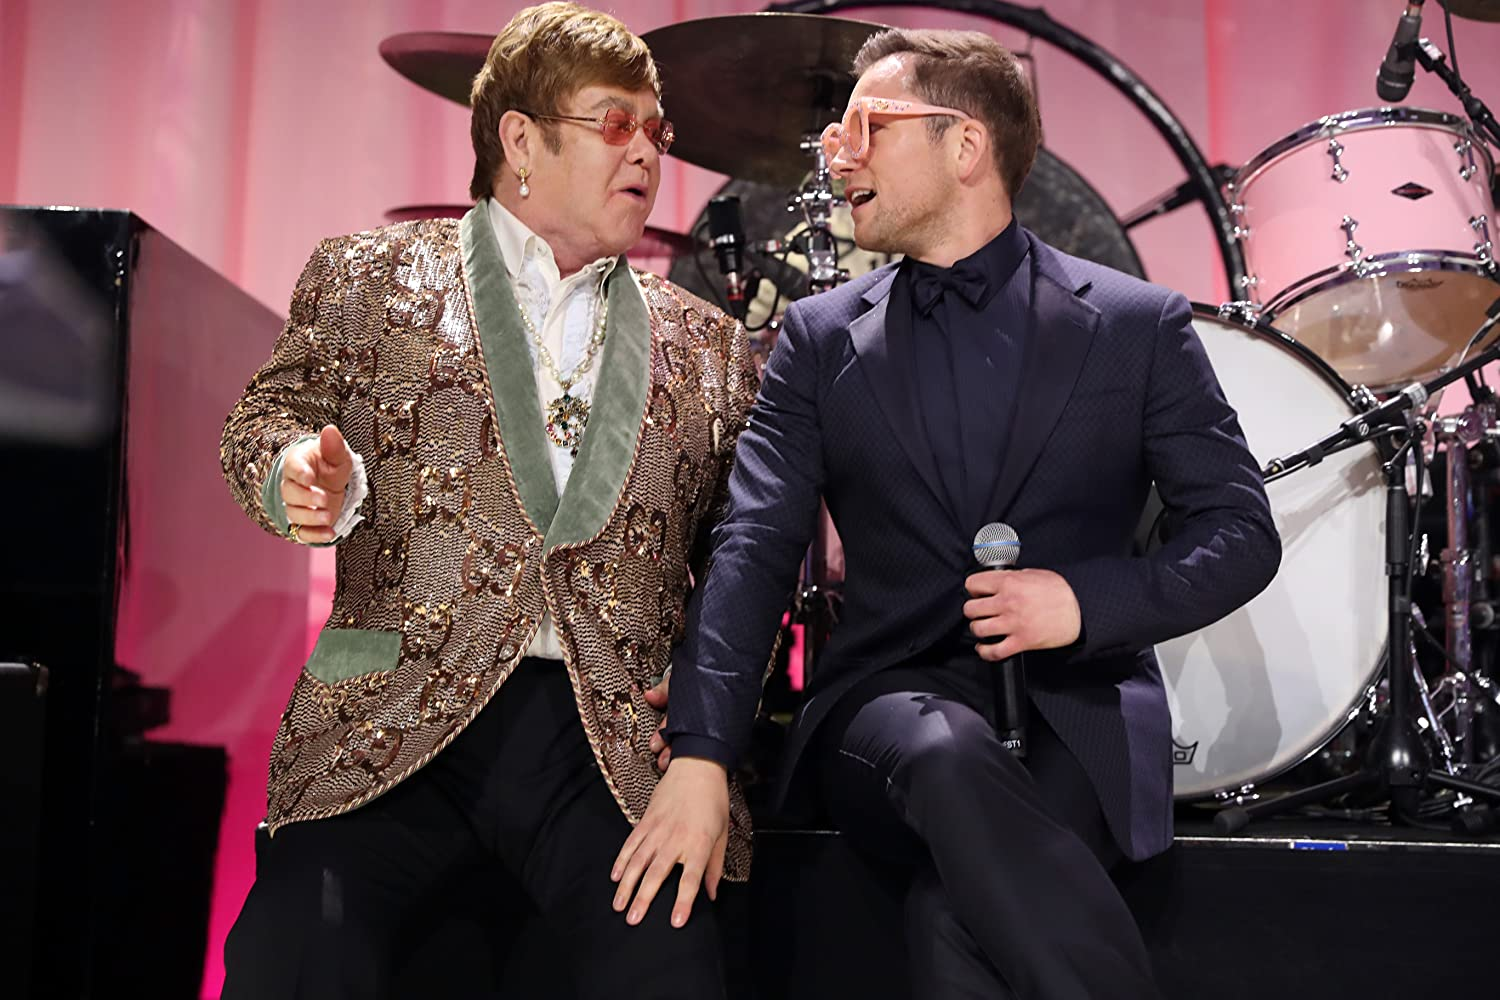 Elton John and Taron Egerton at an event for Rocketman (2019)